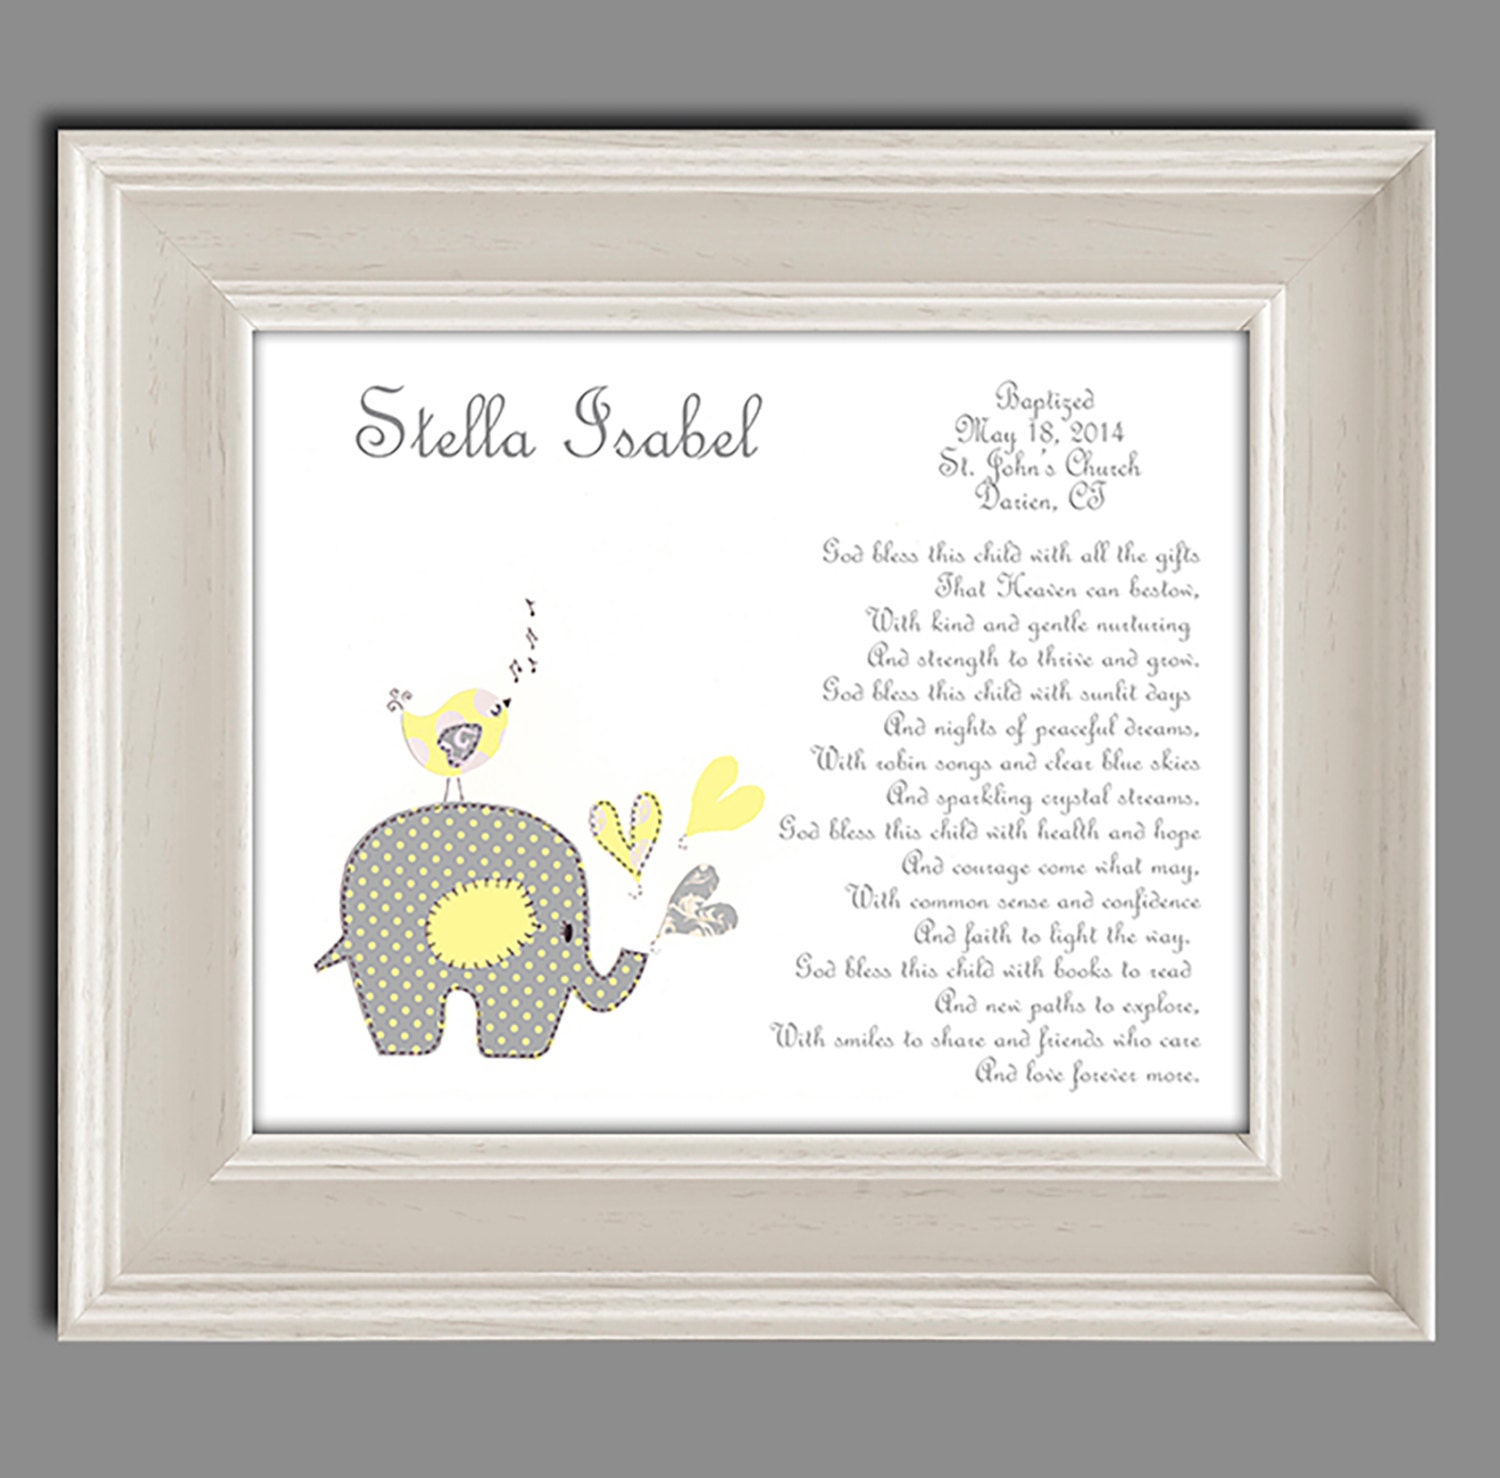 Baptism gift from godparents baby girls christening gift - Gifts for baby christening ideas ...